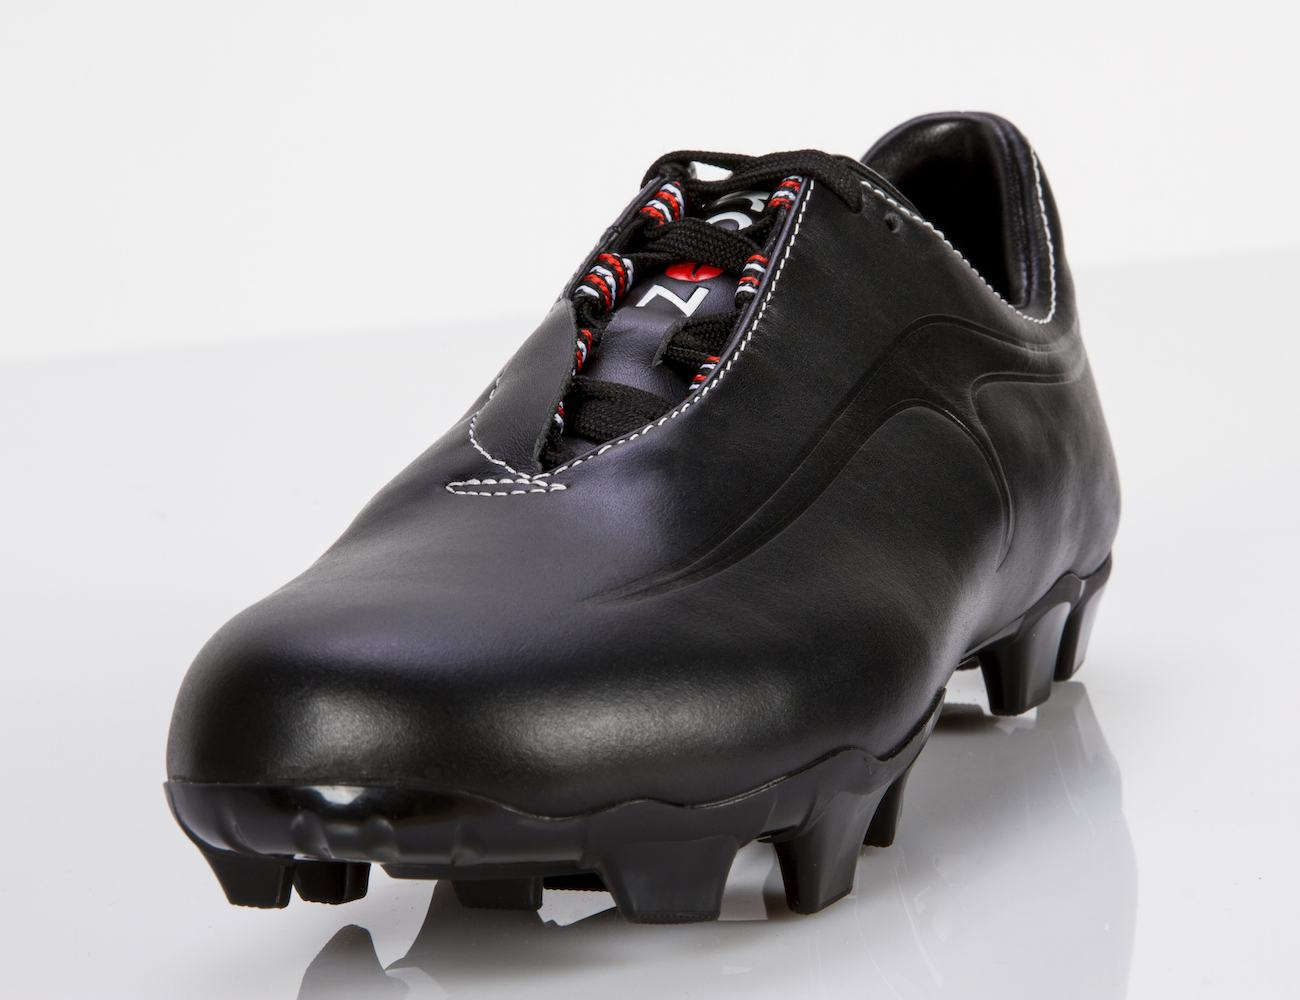 Trooz Women's Sports Cleats